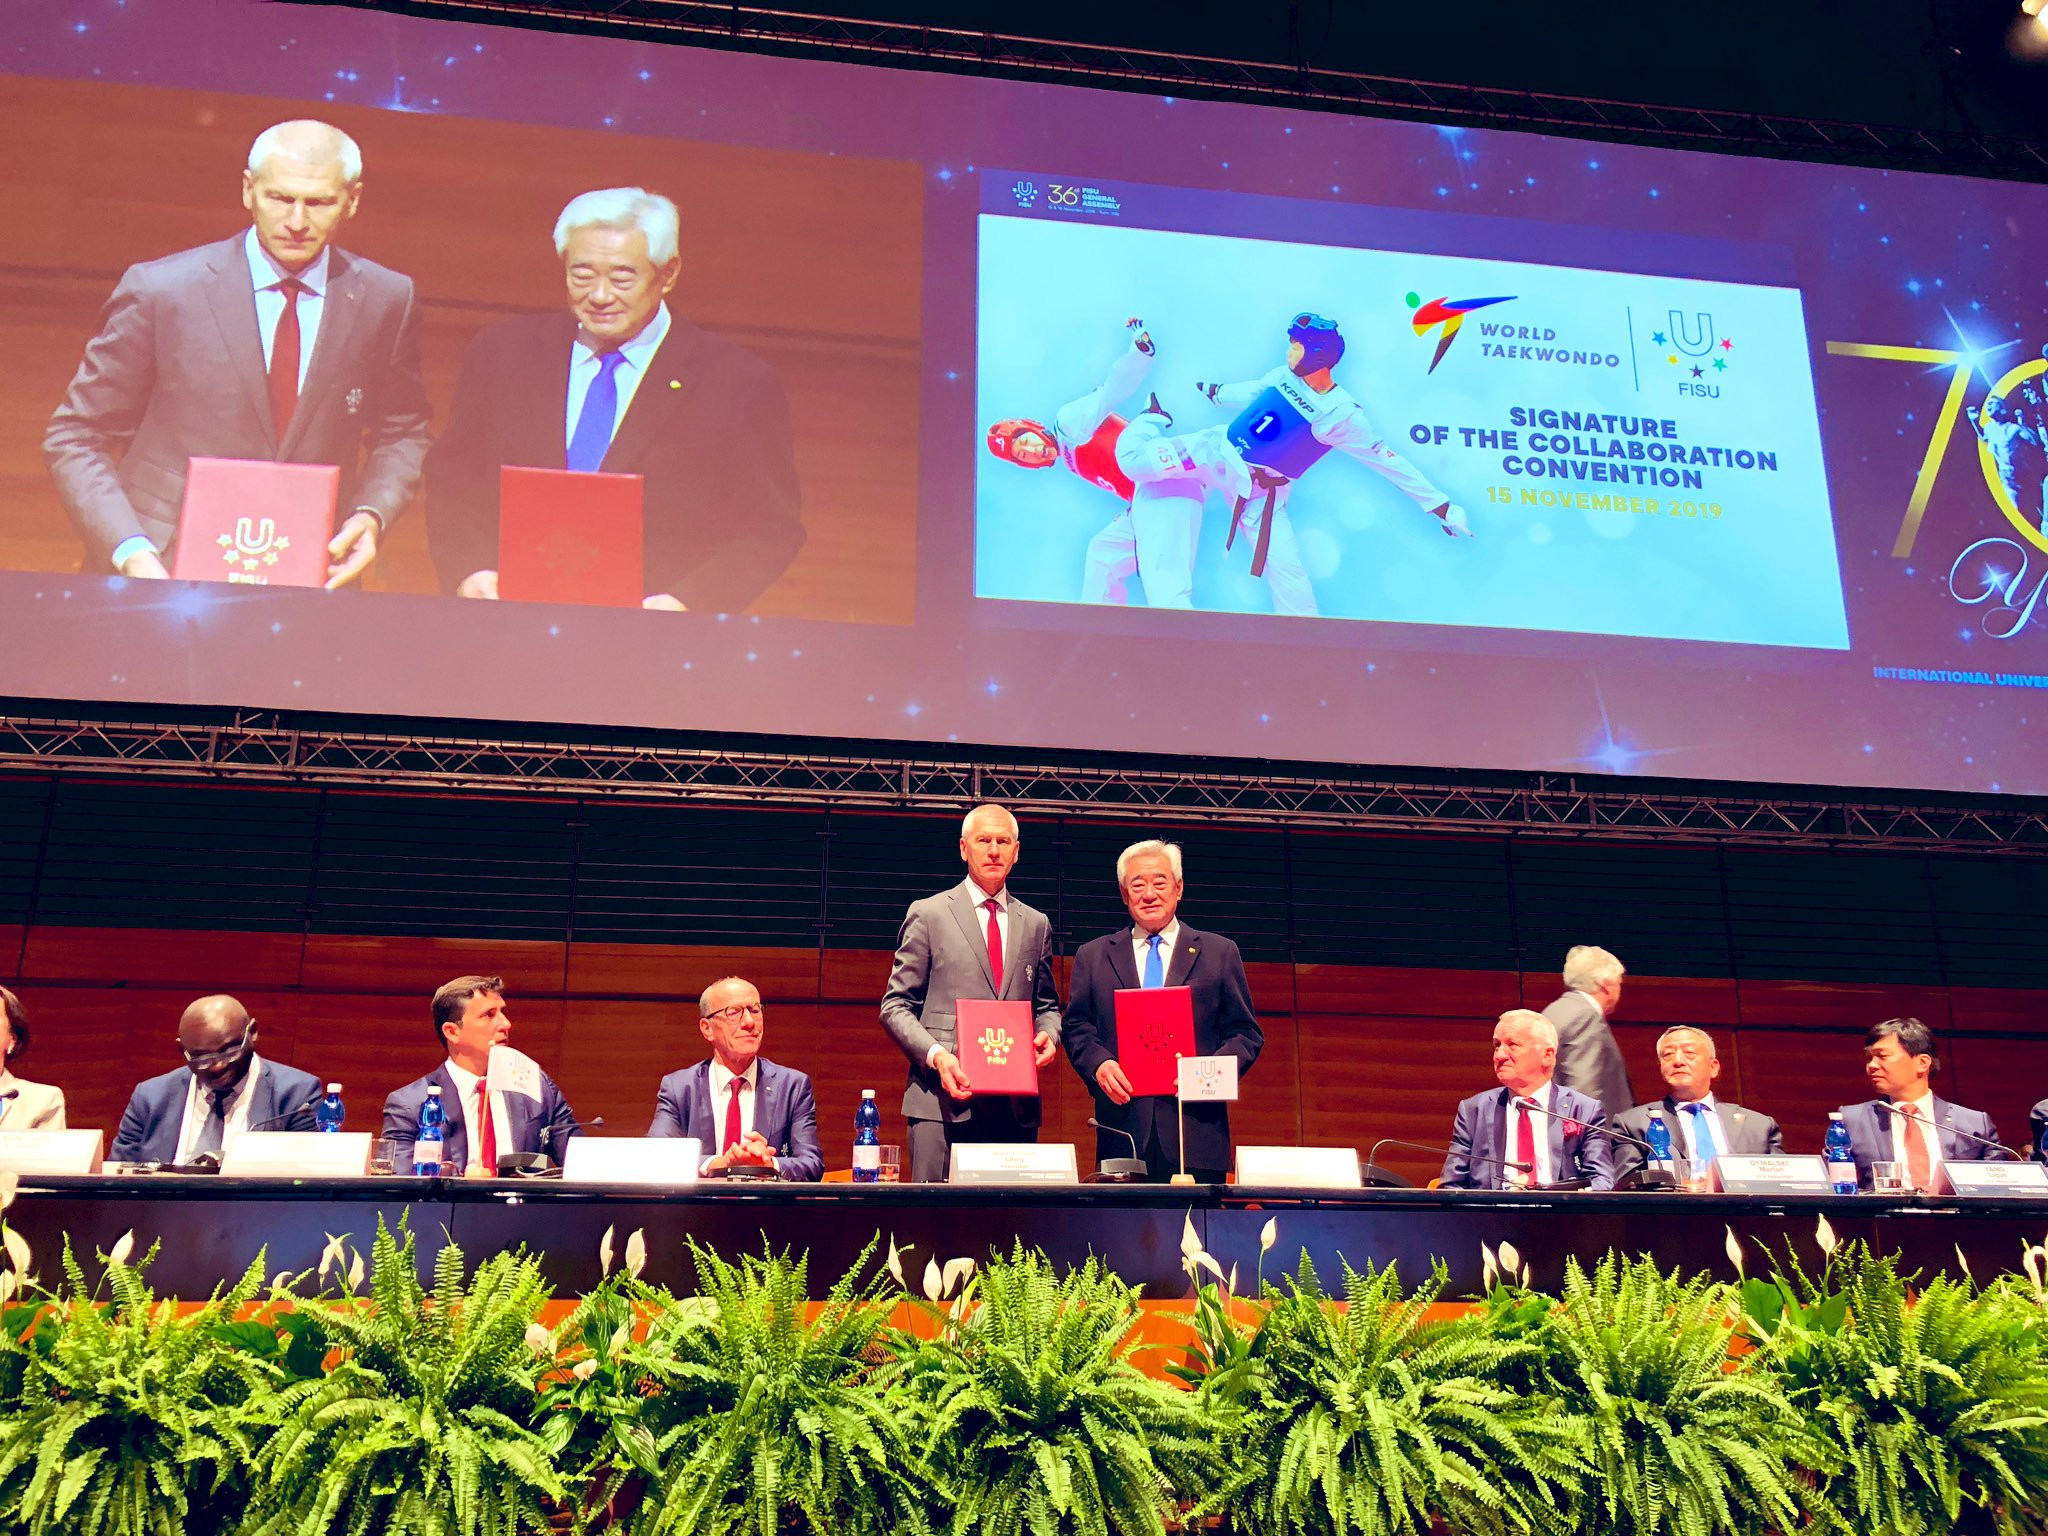 FISU and World Taekwondo are work closely together on a number of projects after Oleg Matytsin and Choue Chung-won signed an agreement ©World Taekwondo